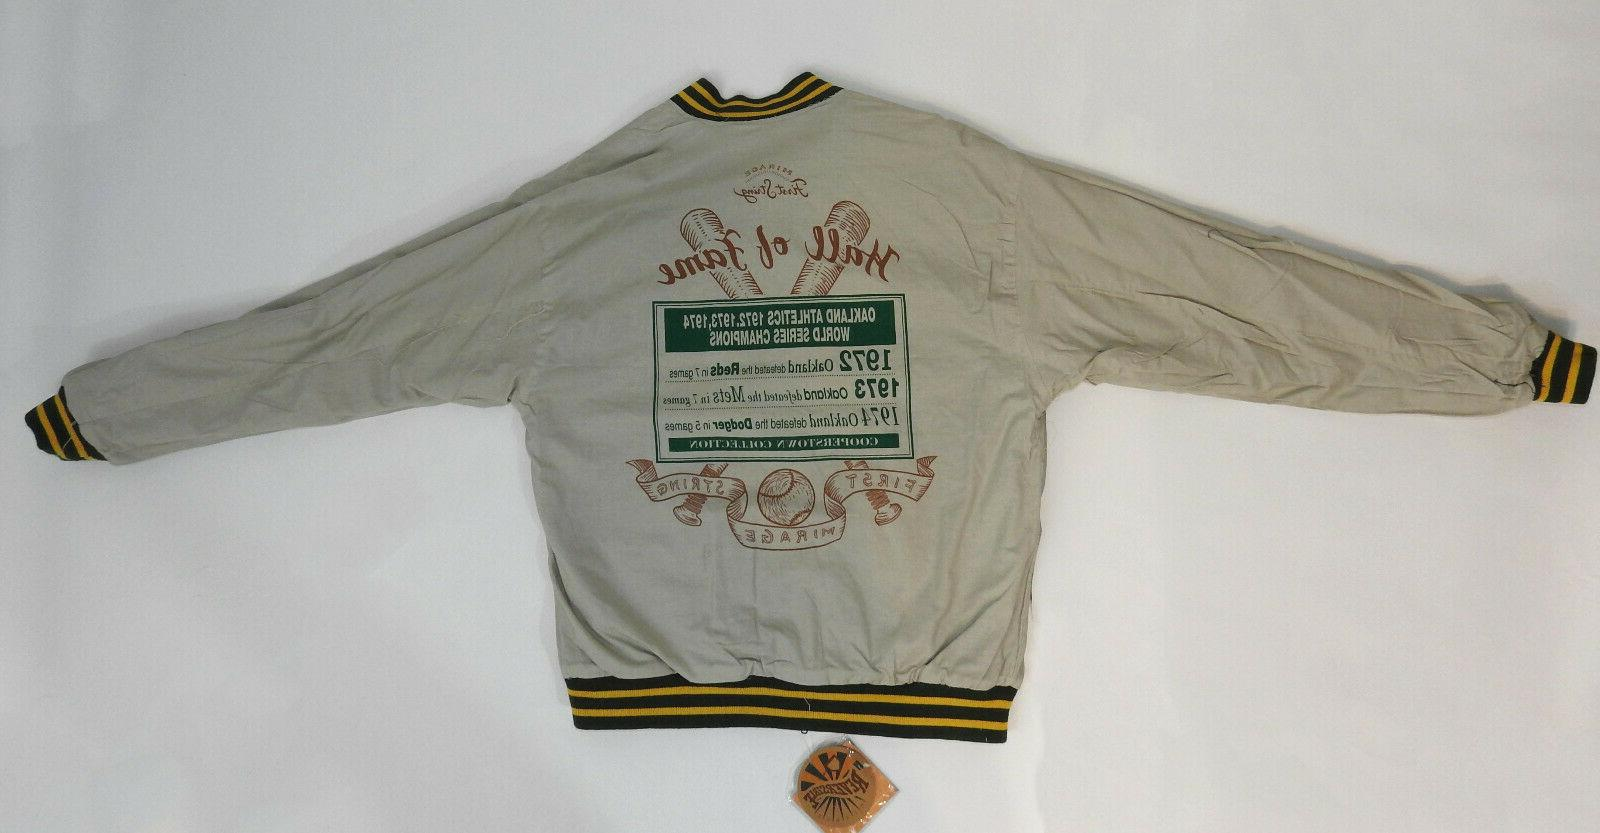 Oakland 72', Commemorative Jacket